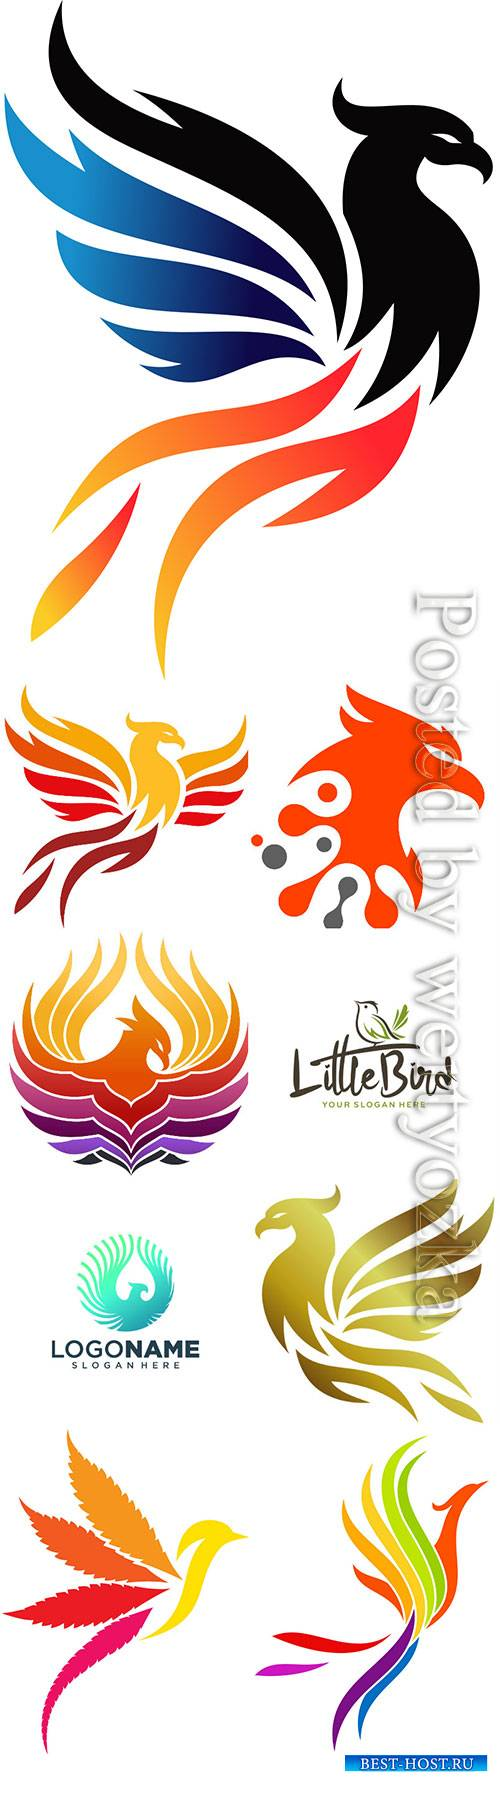 Phoenix logo collection vector illustration